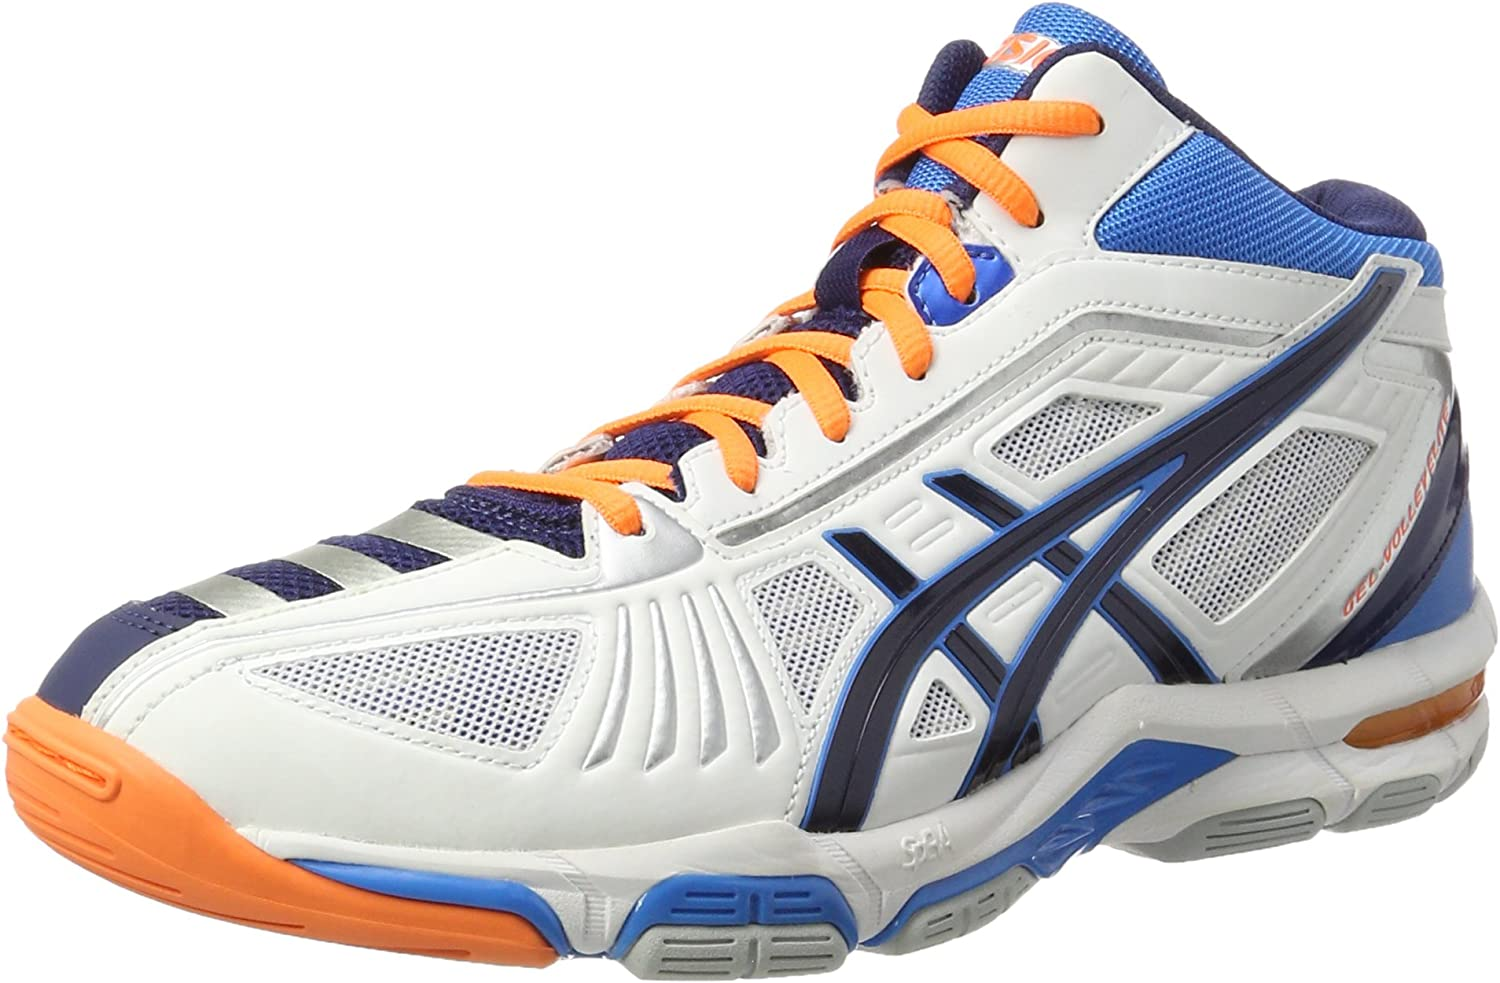 Asics Herren-Volleyballschuh GEL-VOLLEY ELITE 2 MT